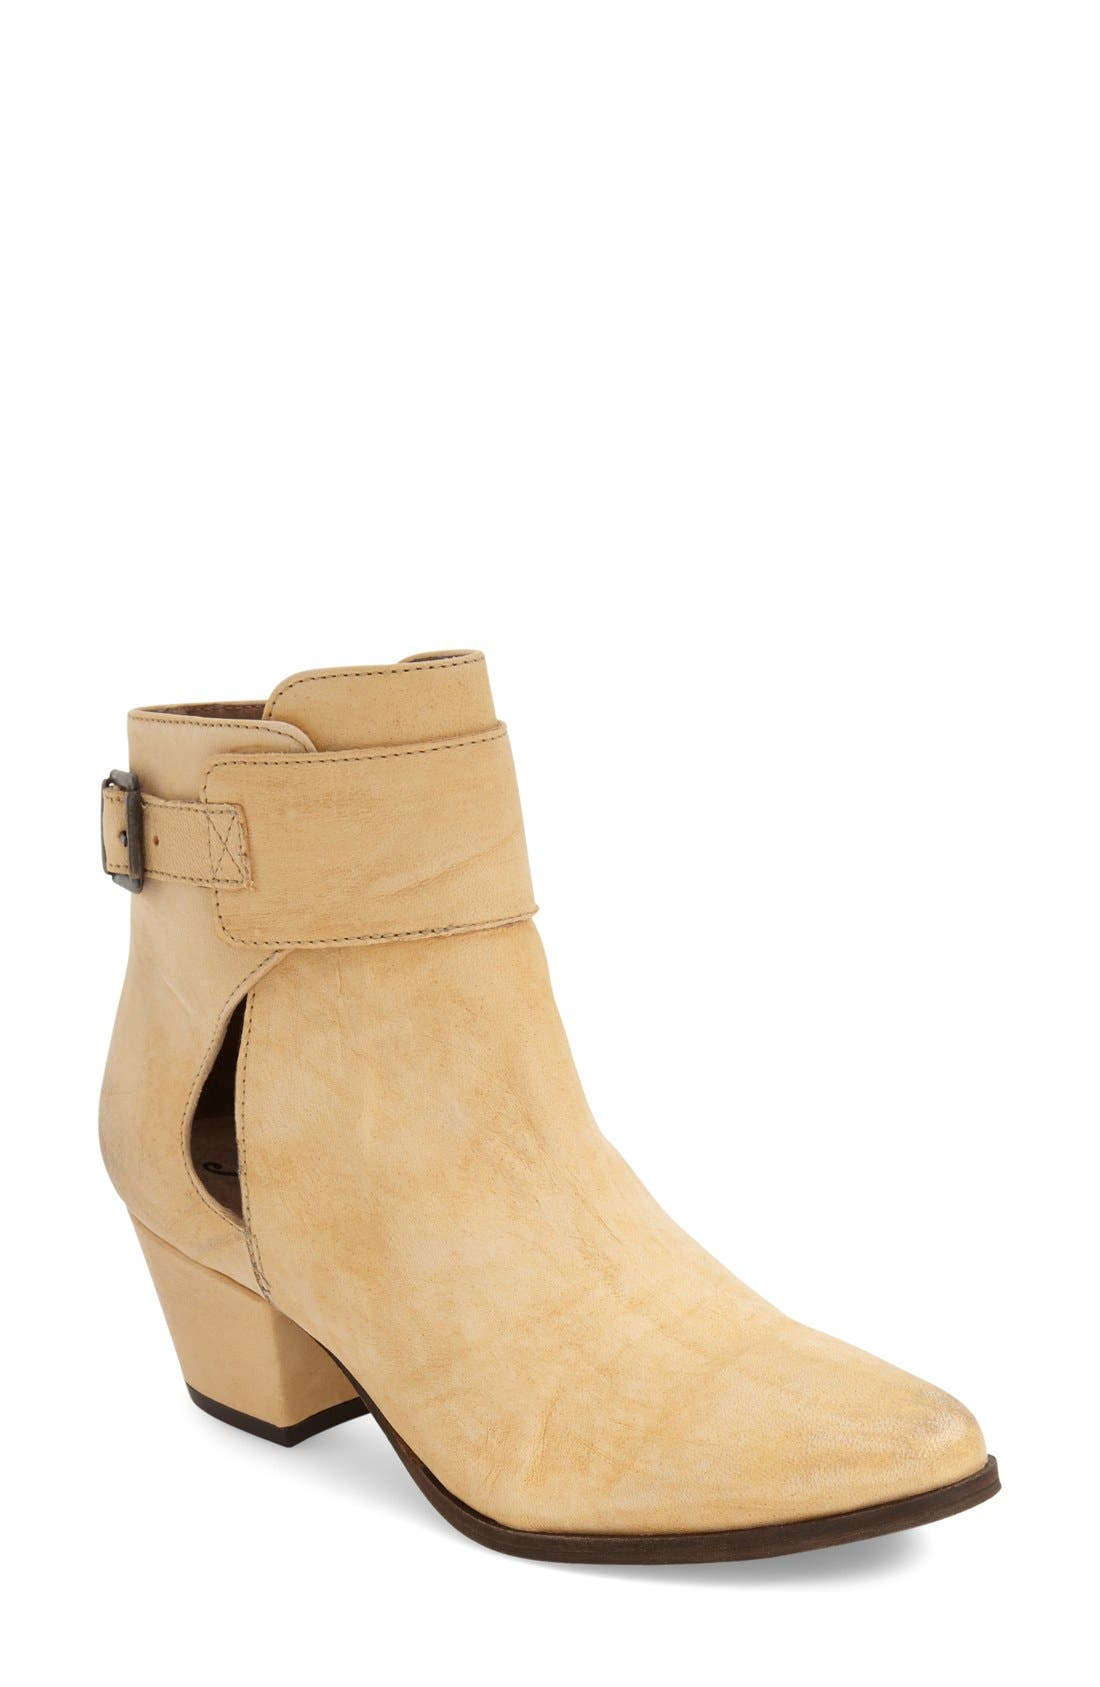 Main Image - Free People 'Belleville' Ankle Bootie (Women)